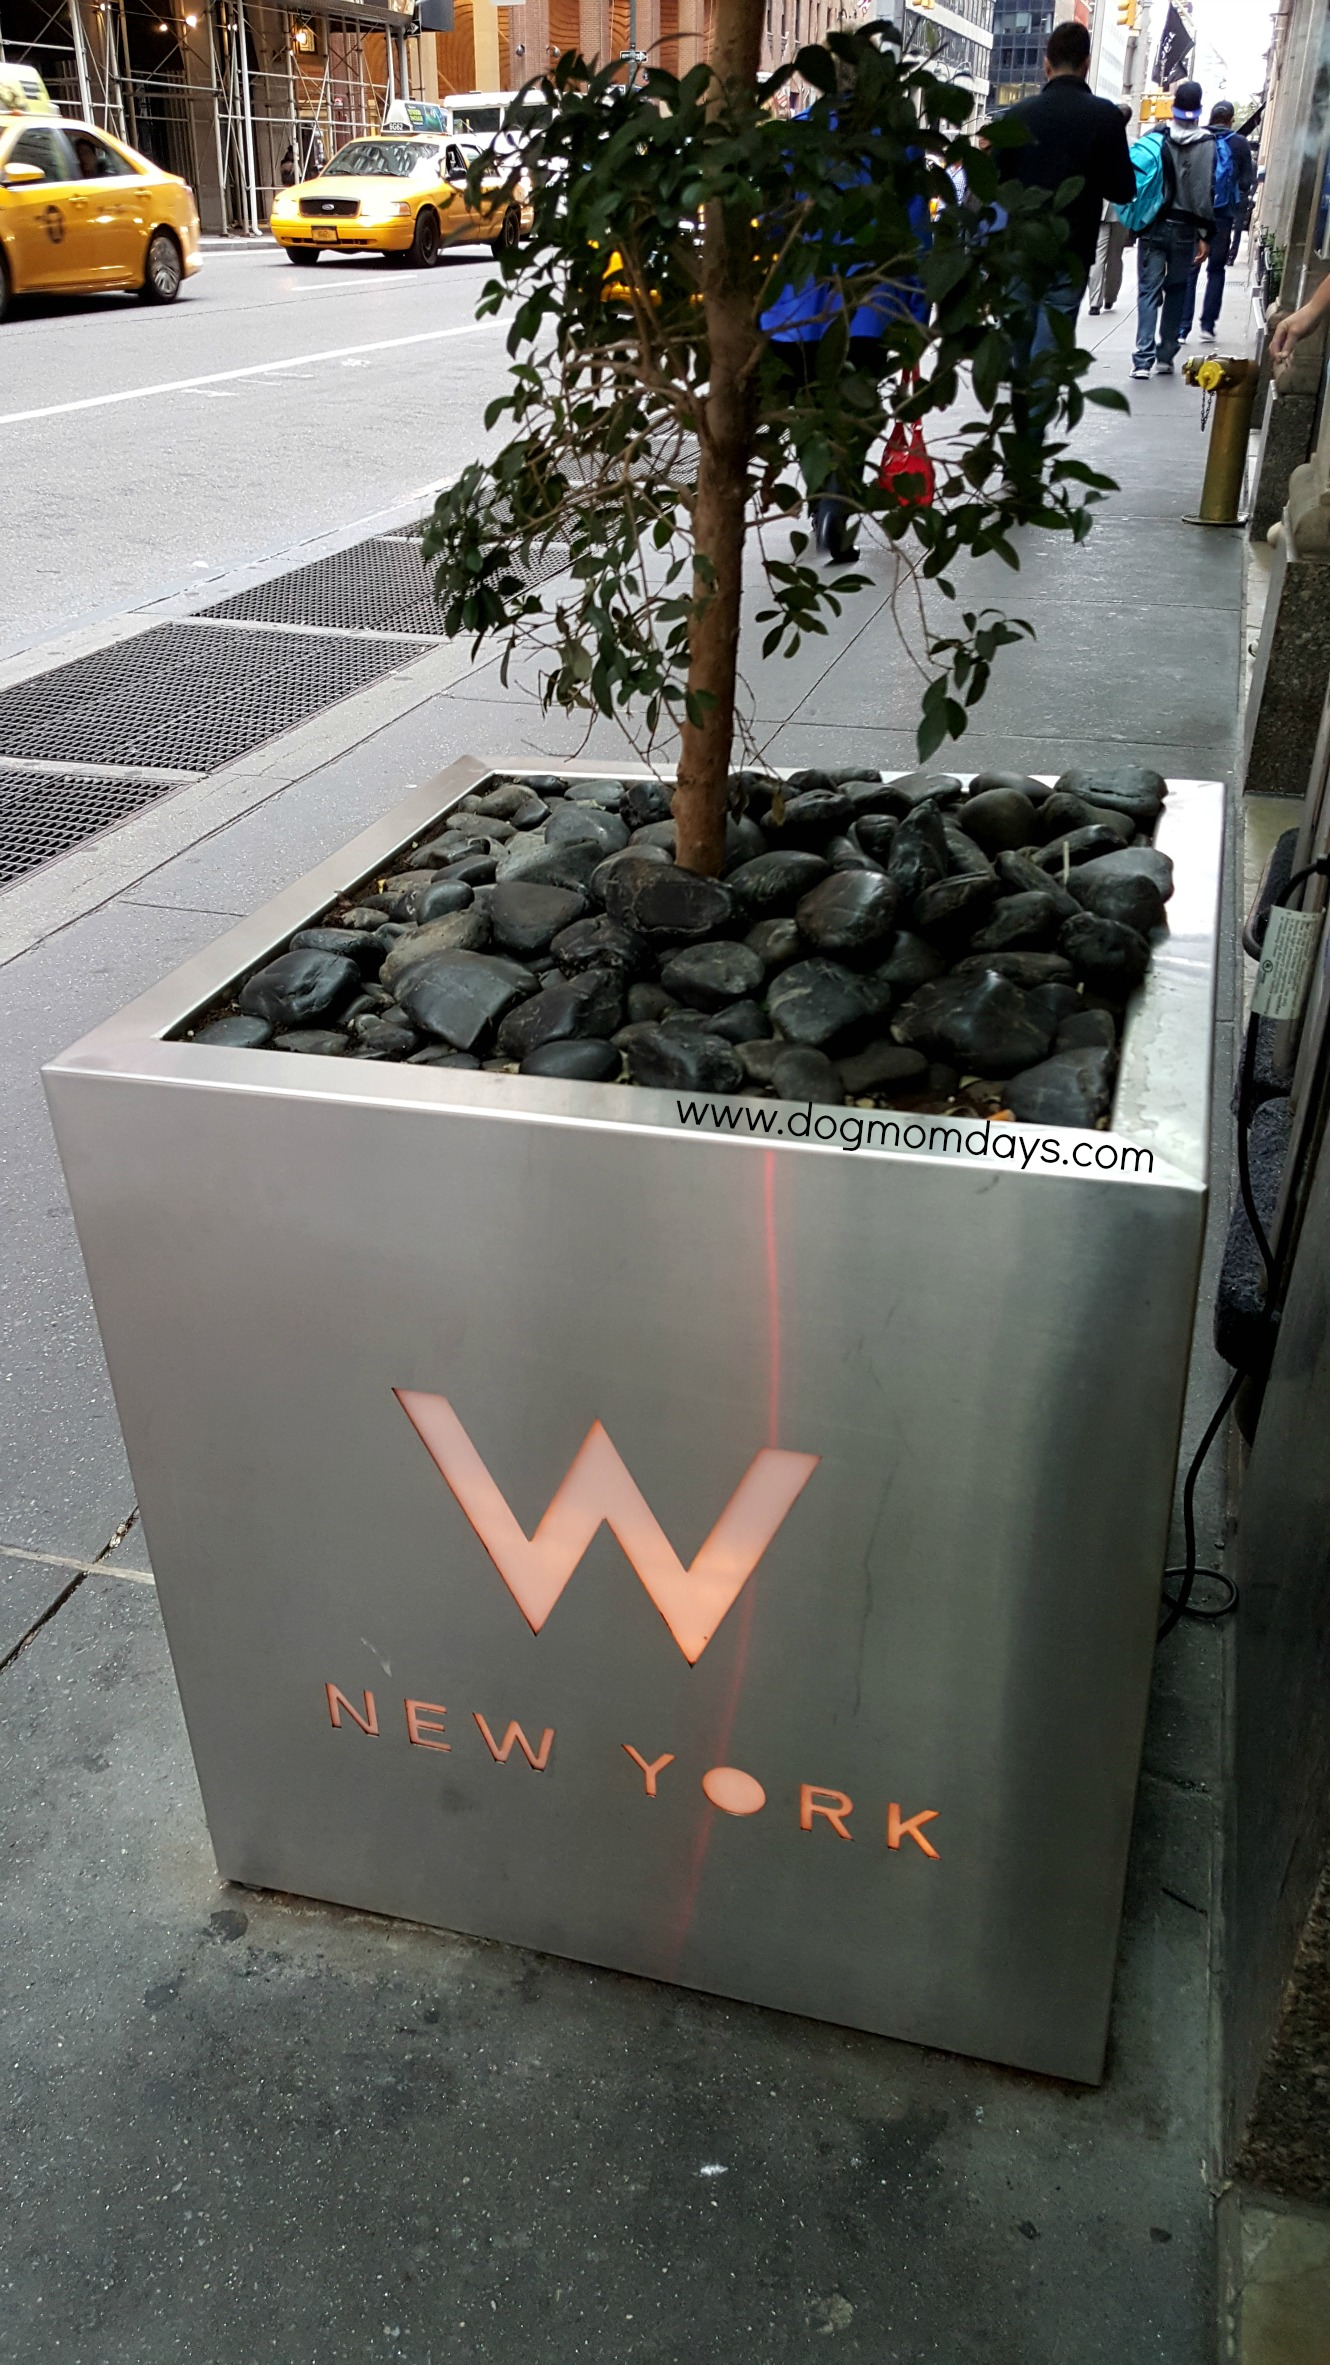 The W Hotel New York